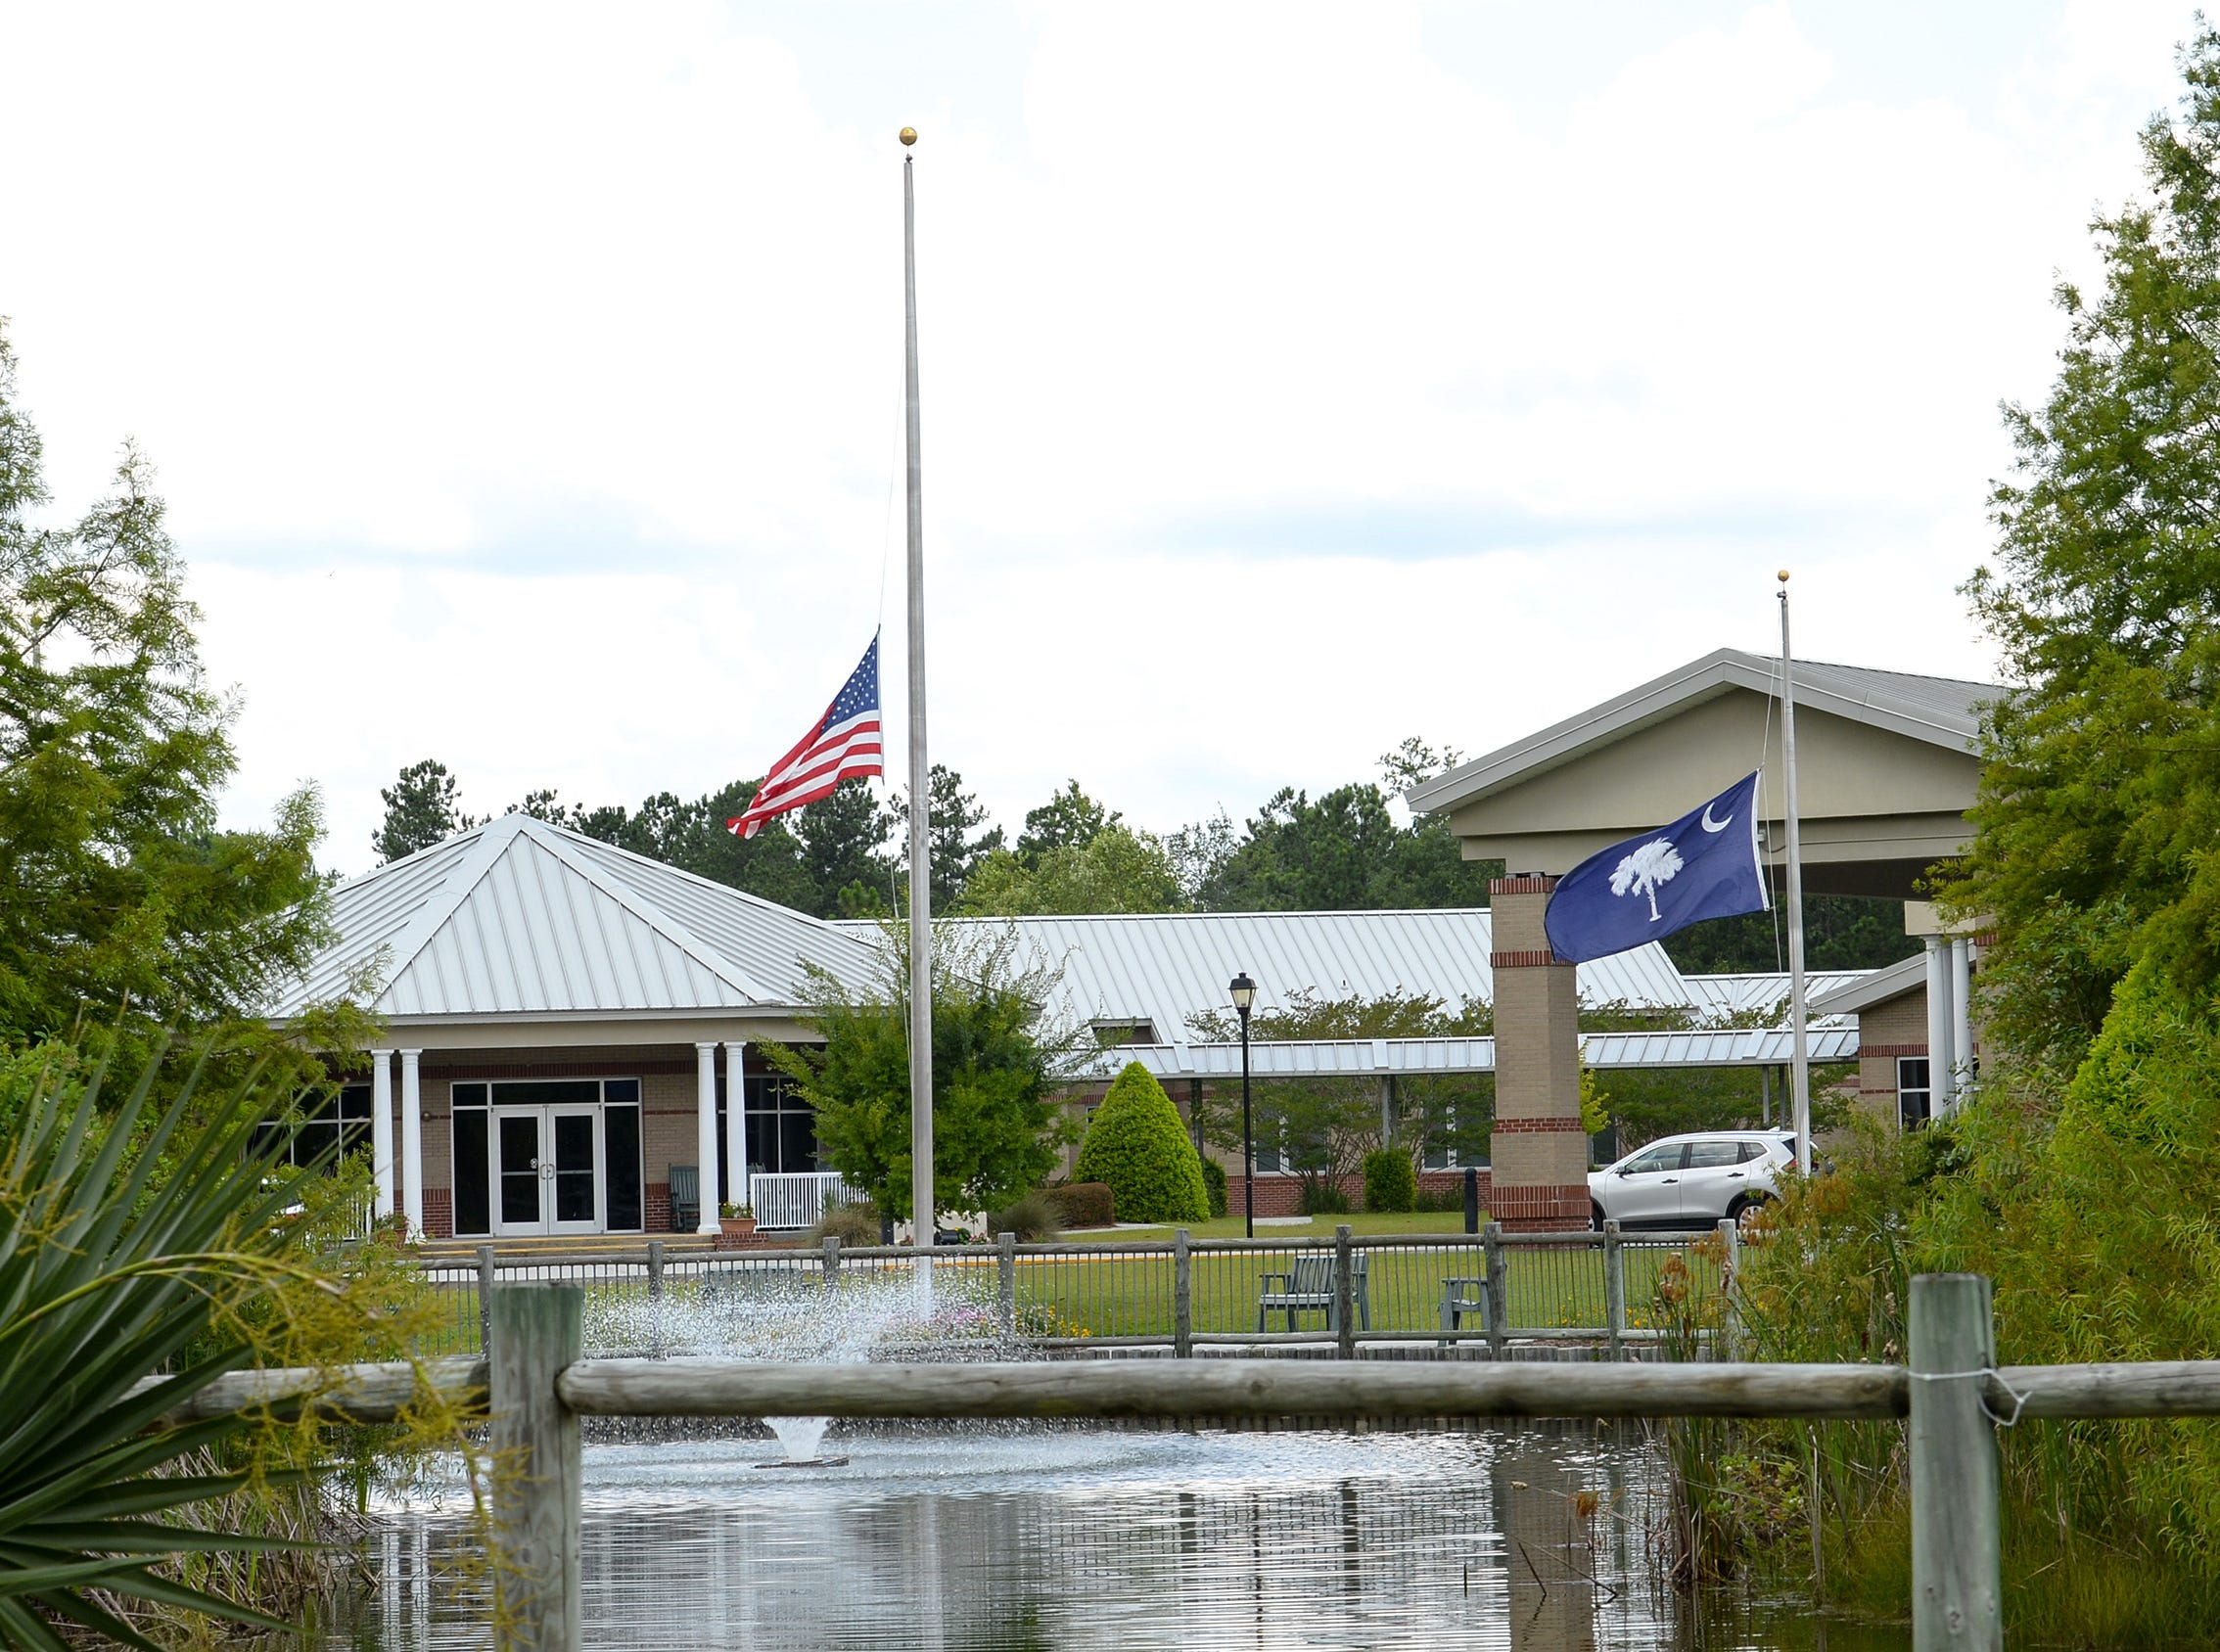 The Veterans' Victory House facility in Walterboro is a 220-bed nursing care operation.